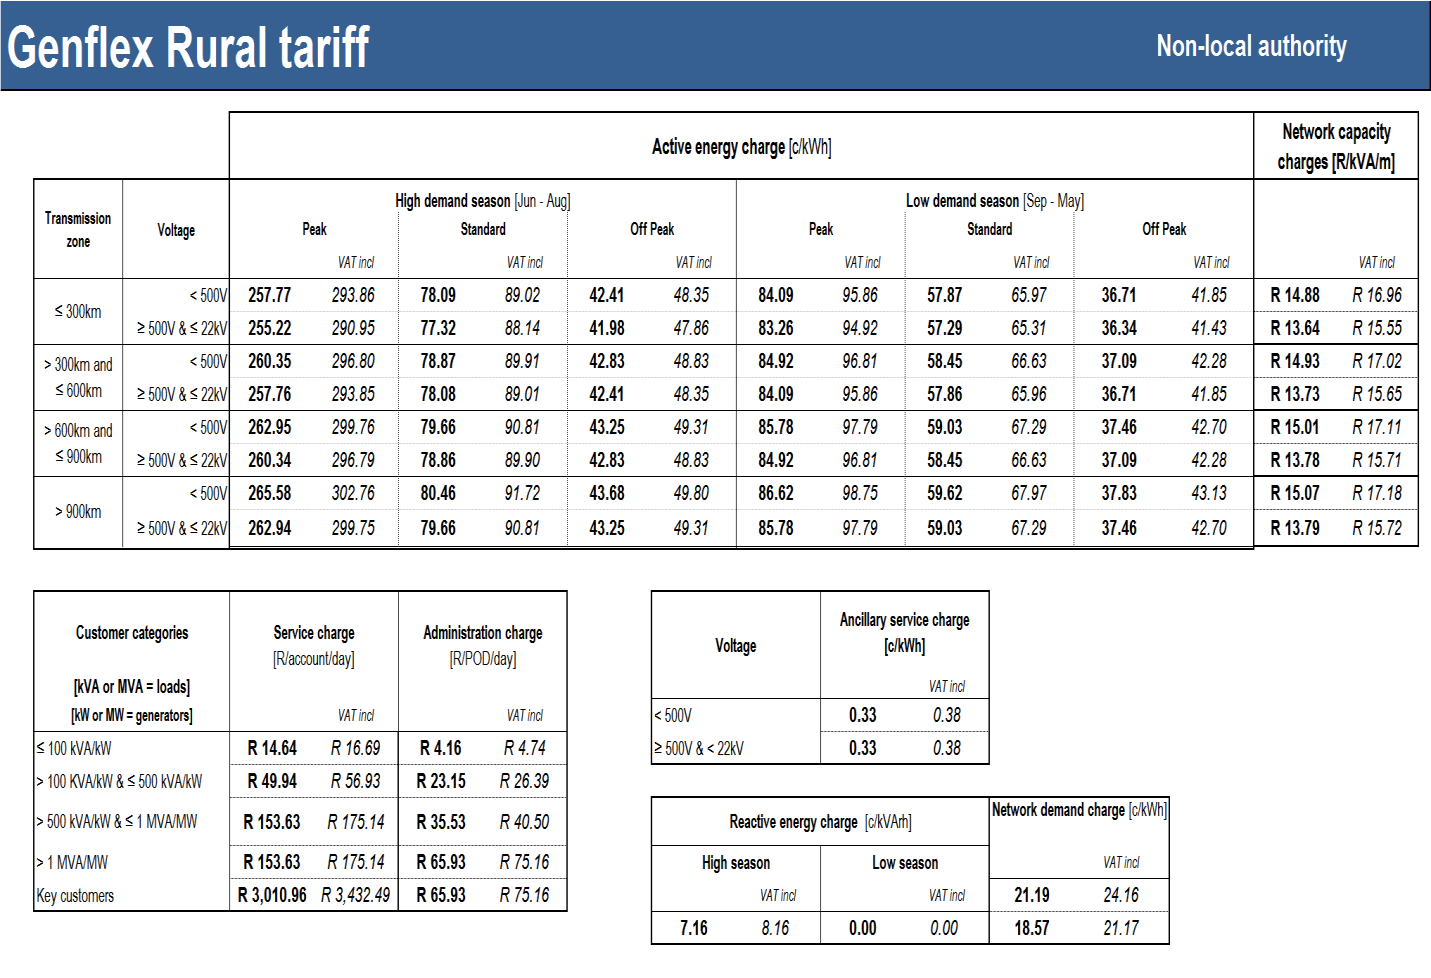 Table 38: Genflex Rural tariff SC0207(2015/16) Eskom schedule